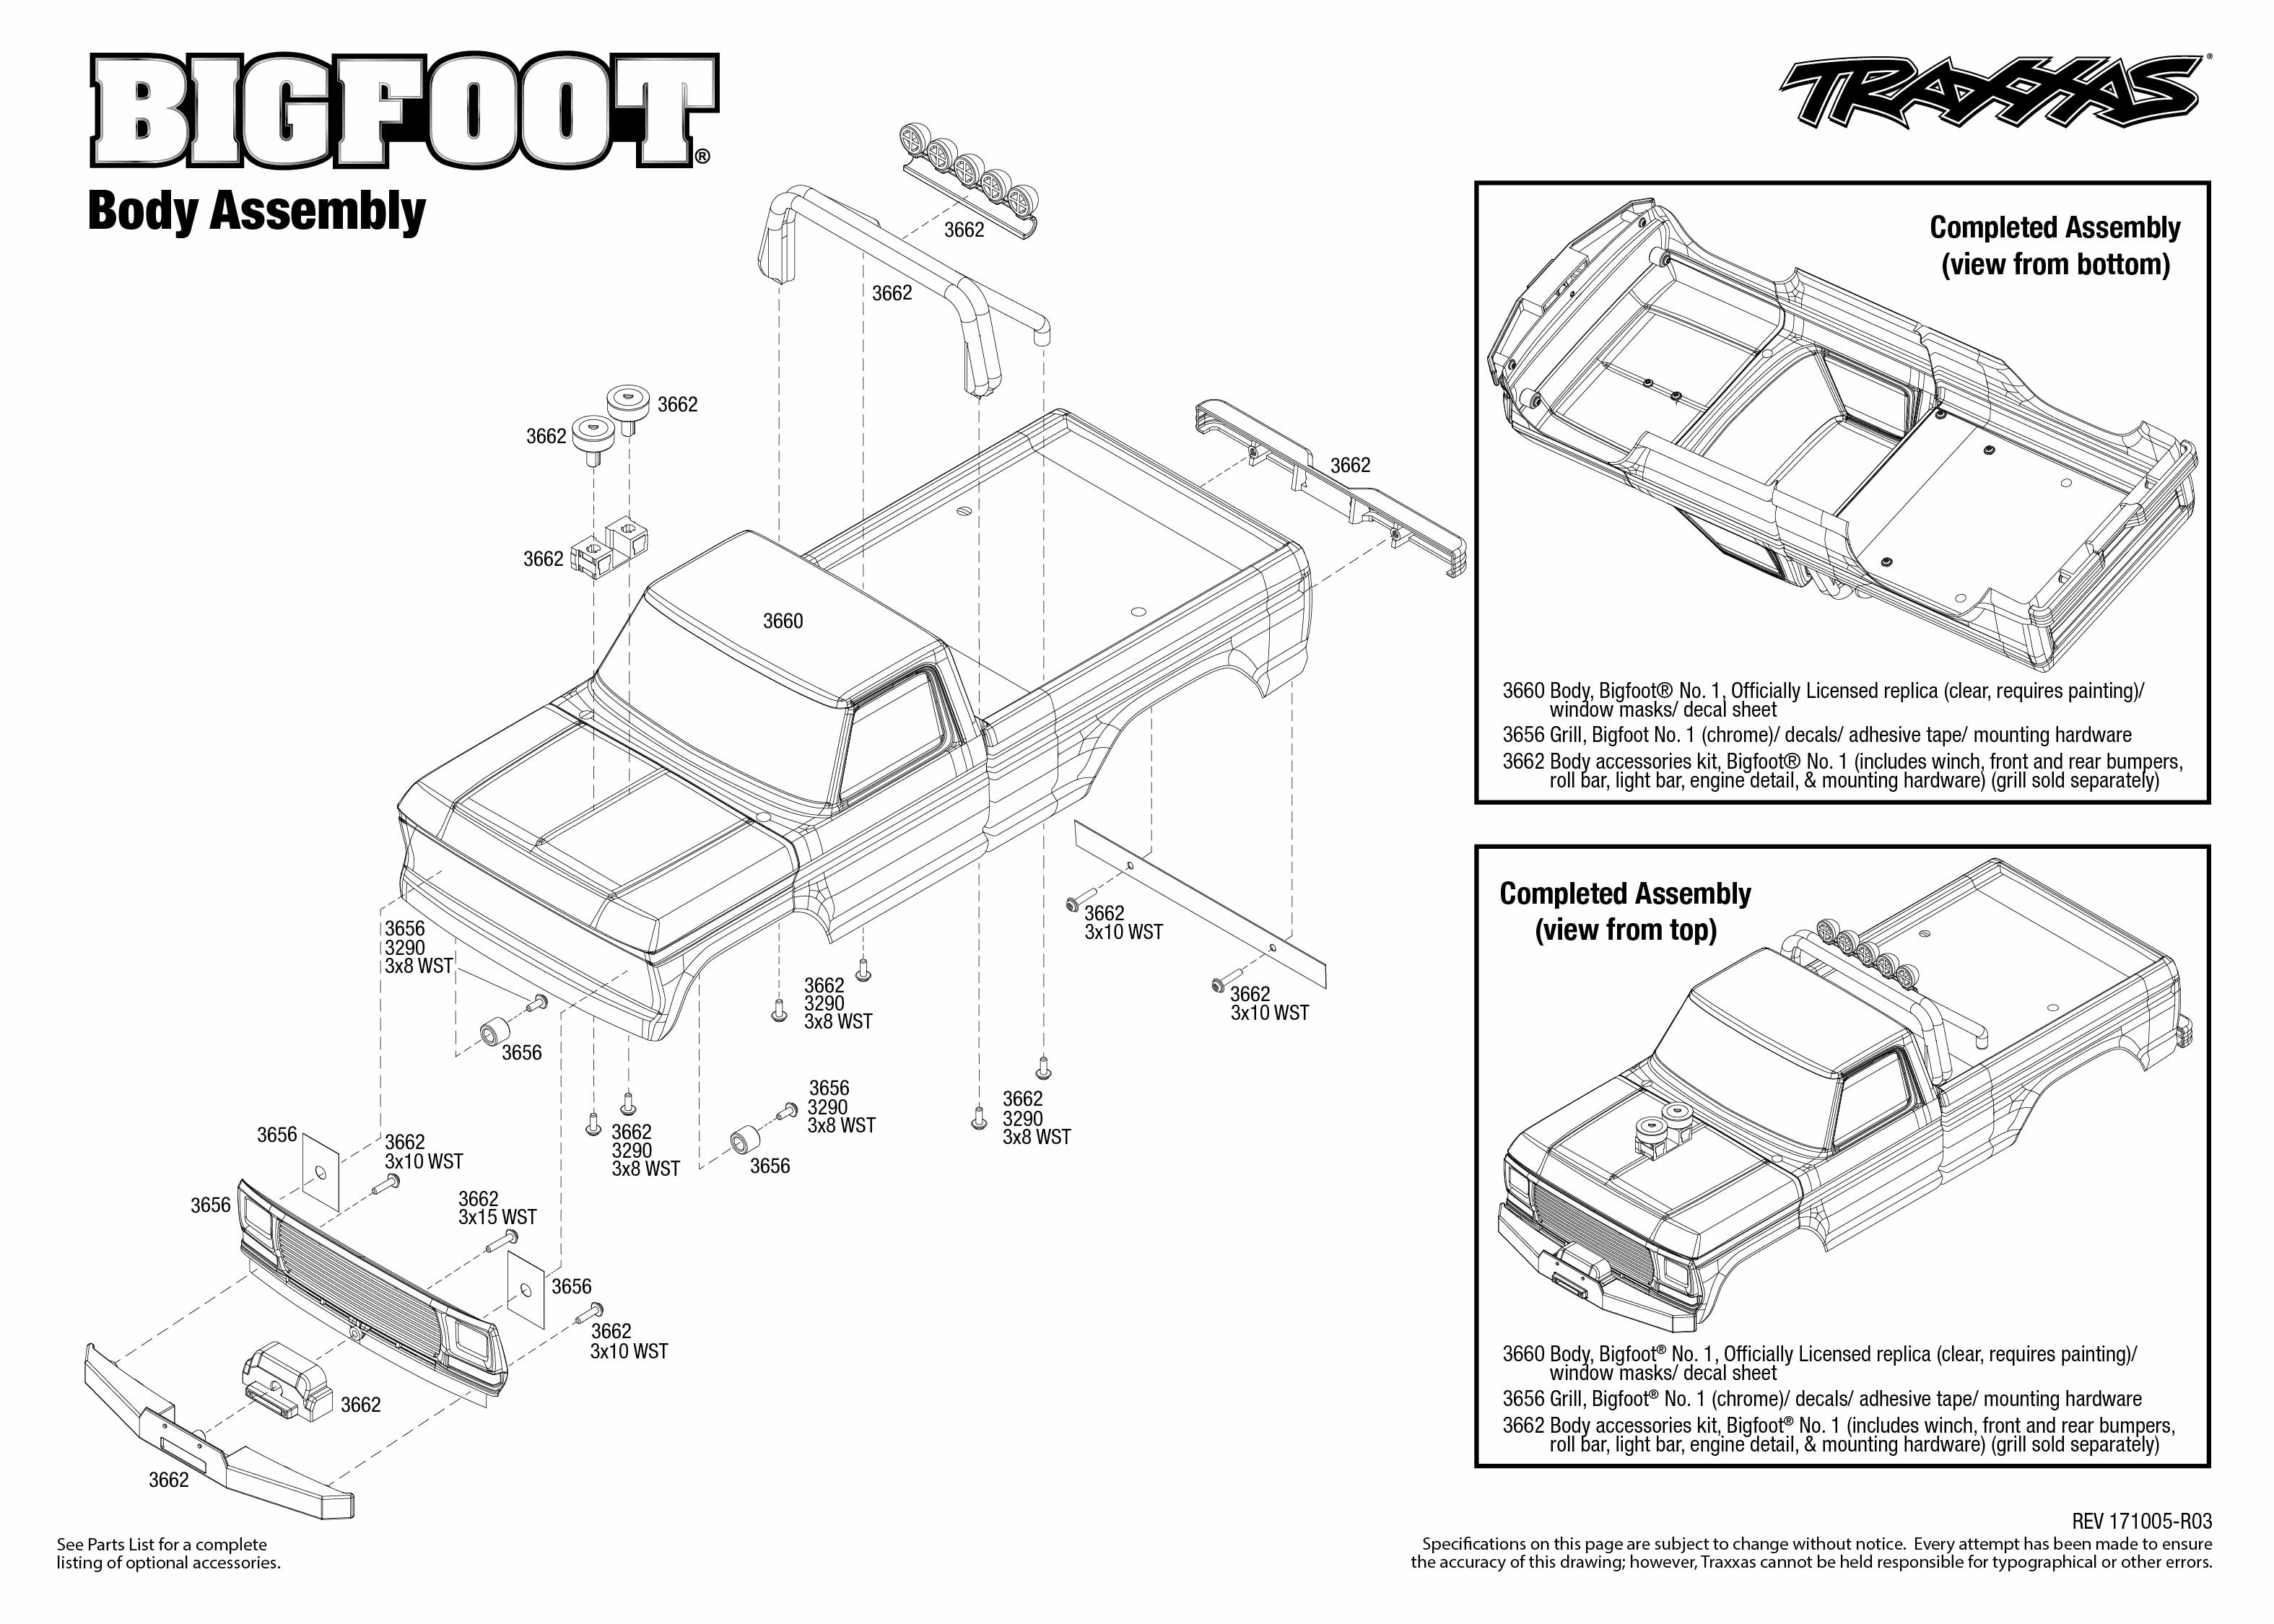 Traxxas Bigfoot Diagram Excellent Electrical Wiring House Stampede Vxl Parts Monster Jam Replicas 3602 No 1 36034 Body Assembly Exploded View Rh Com Bandit